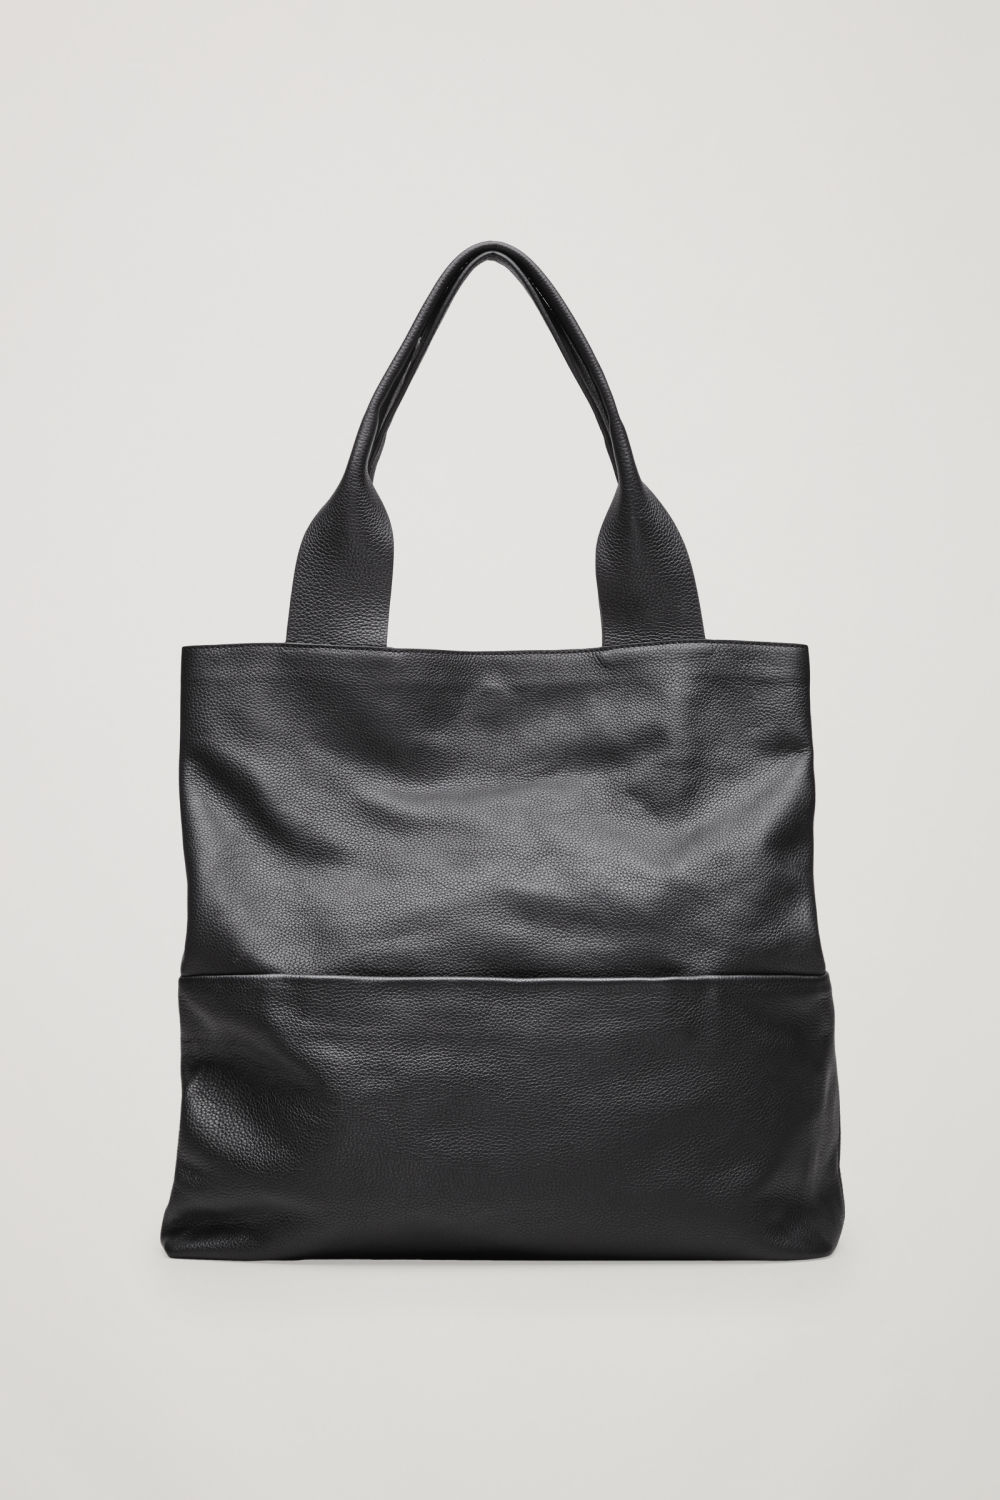 LARGE GRAINED LEATHER BAG